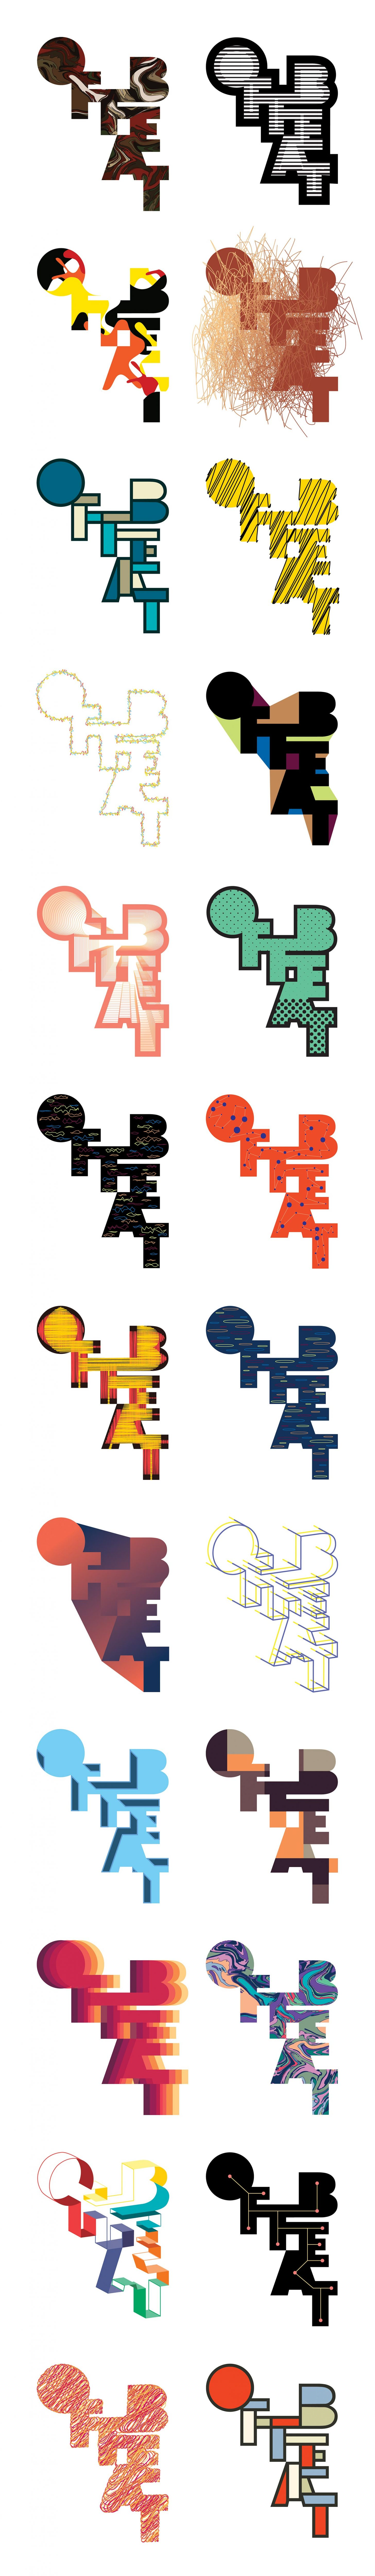 Sir Offbeat Logo Designs by Furia